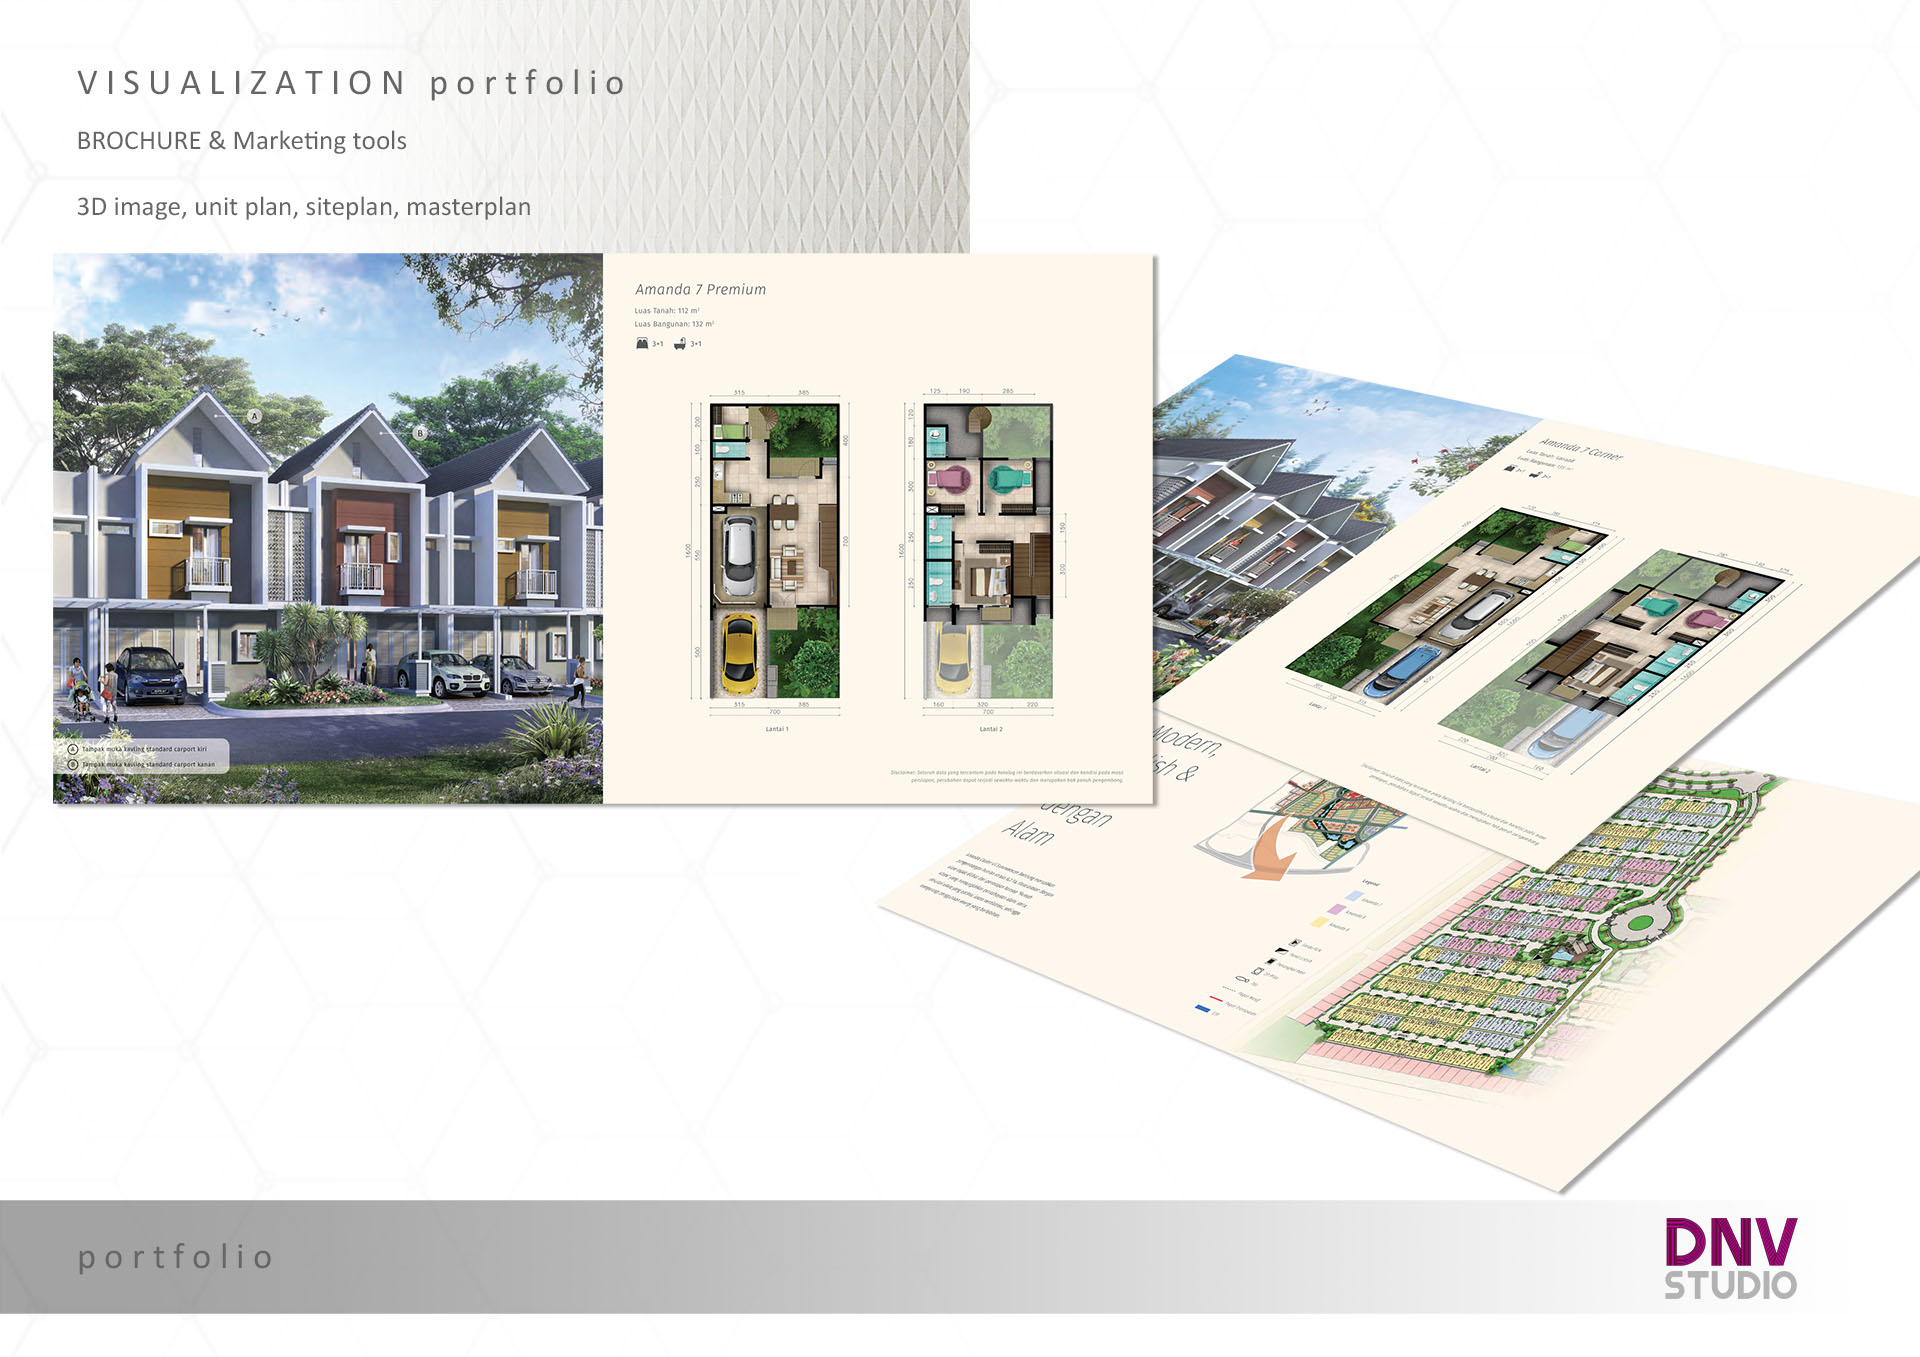 2D colored plan, siteplan, masterplan - 2D colored plan / siteplan / masterplan for property brochure4000 pixel on longest side, sent via email in PNG formatdata provided by client:* 2D model data [ PDF / CAD / SKP / MAX ]*color palet & mood referenceinclude 3 times revisionproduct delivery 2-5 work days after the data sent by client